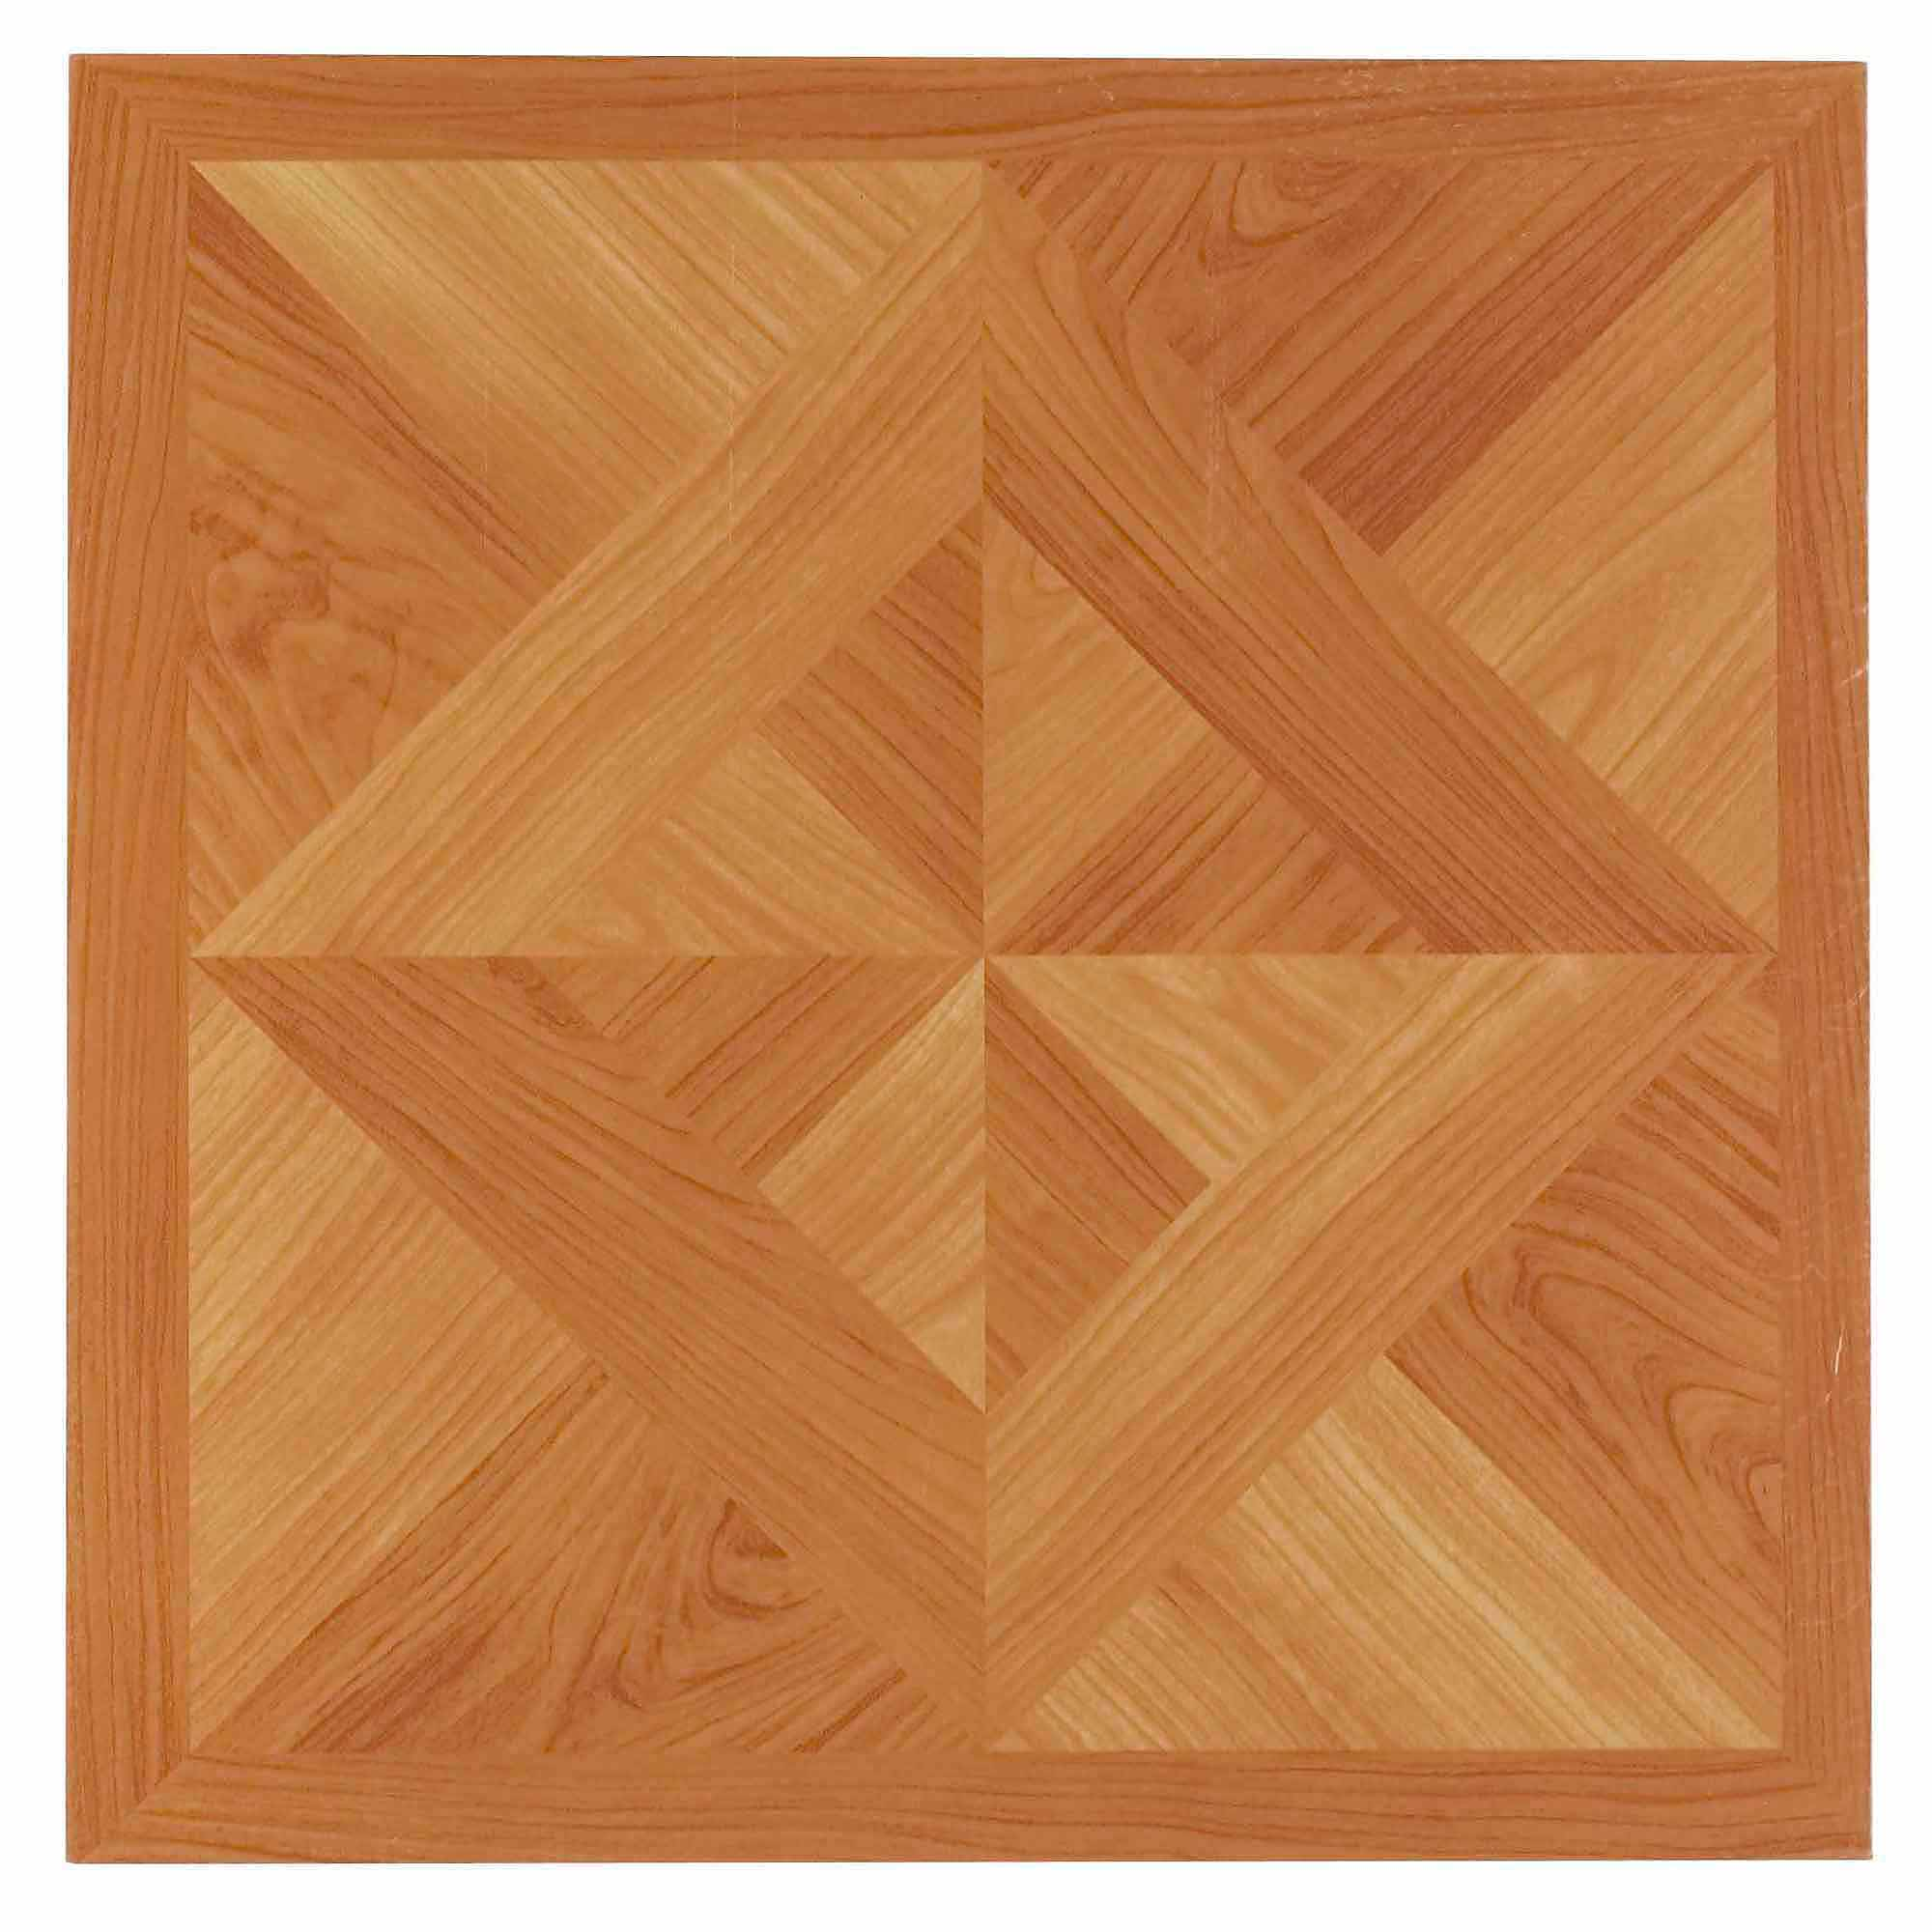 Self adhesive floor tiles nexus classic light oak diamond parquet 12x12 self adhesive vinyl floor tile 20 tiles dailygadgetfo Choice Image